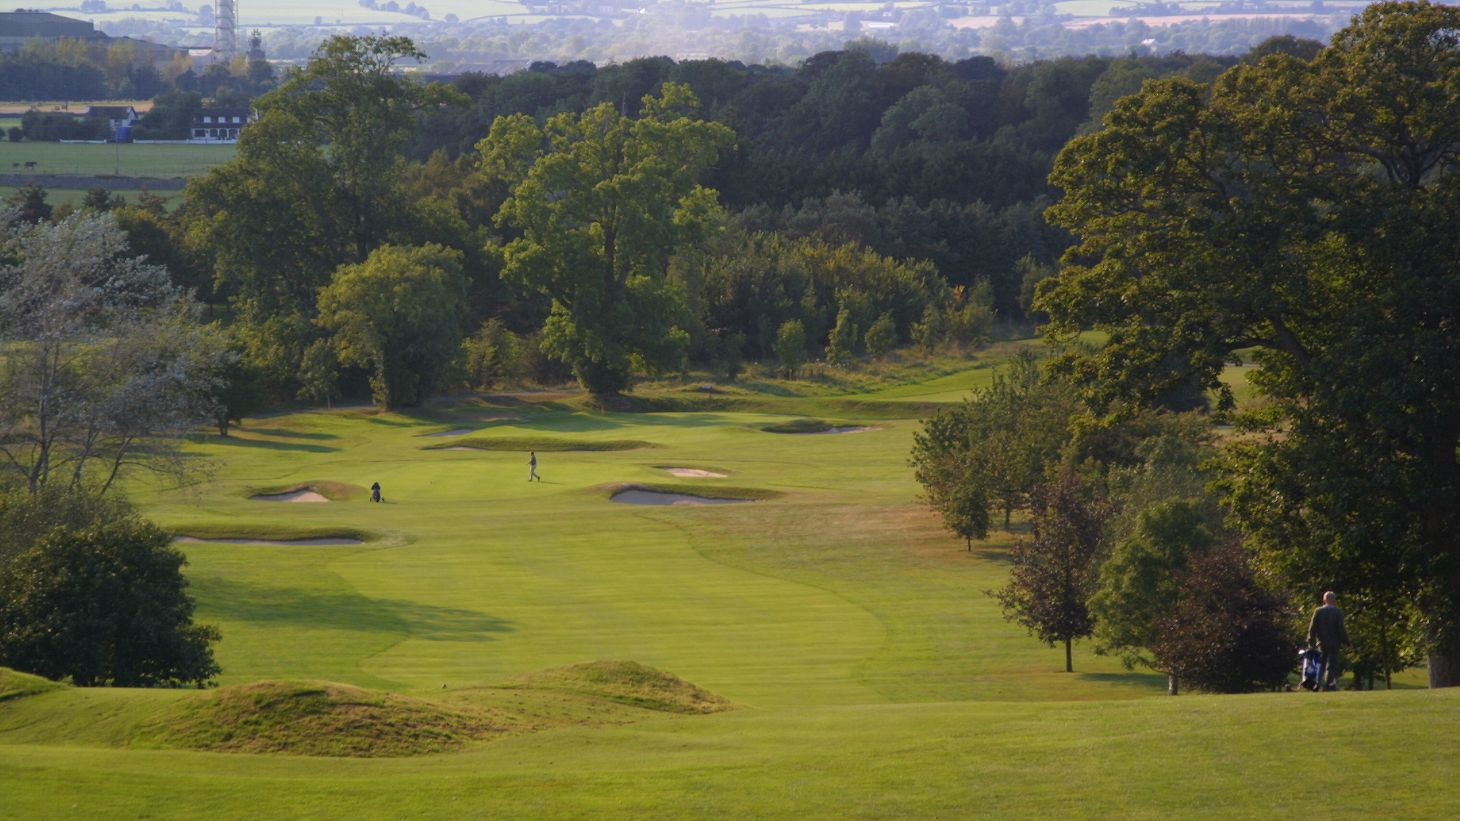 Visit Carlow Golf Club in County Carlow.